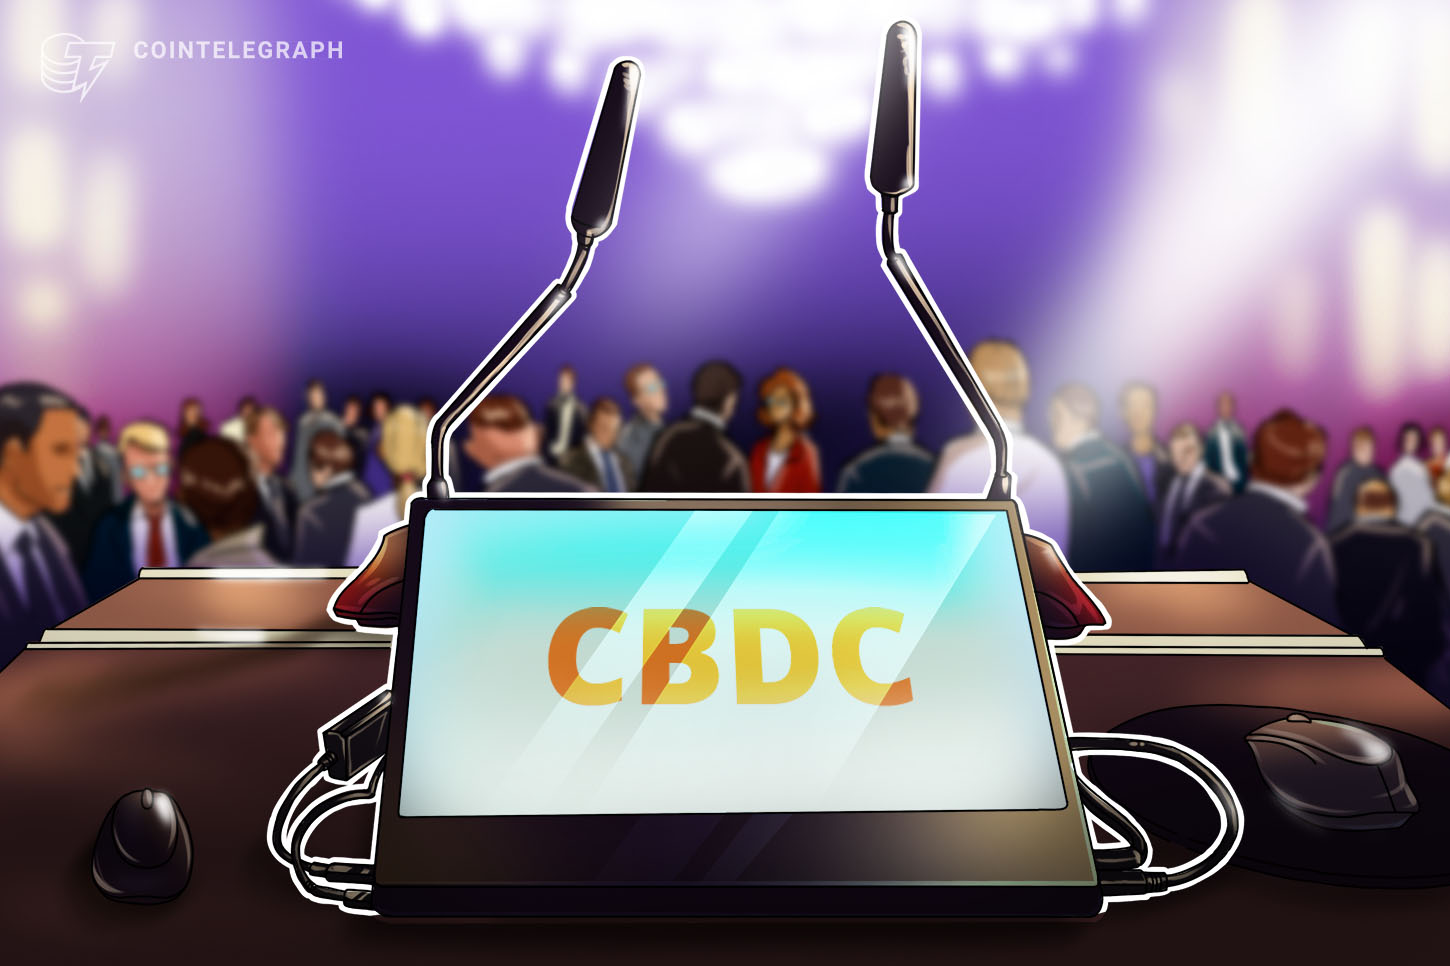 Foreign CBDCs and stablecoins unlikely to threaten US dollar, says Fed vice chair